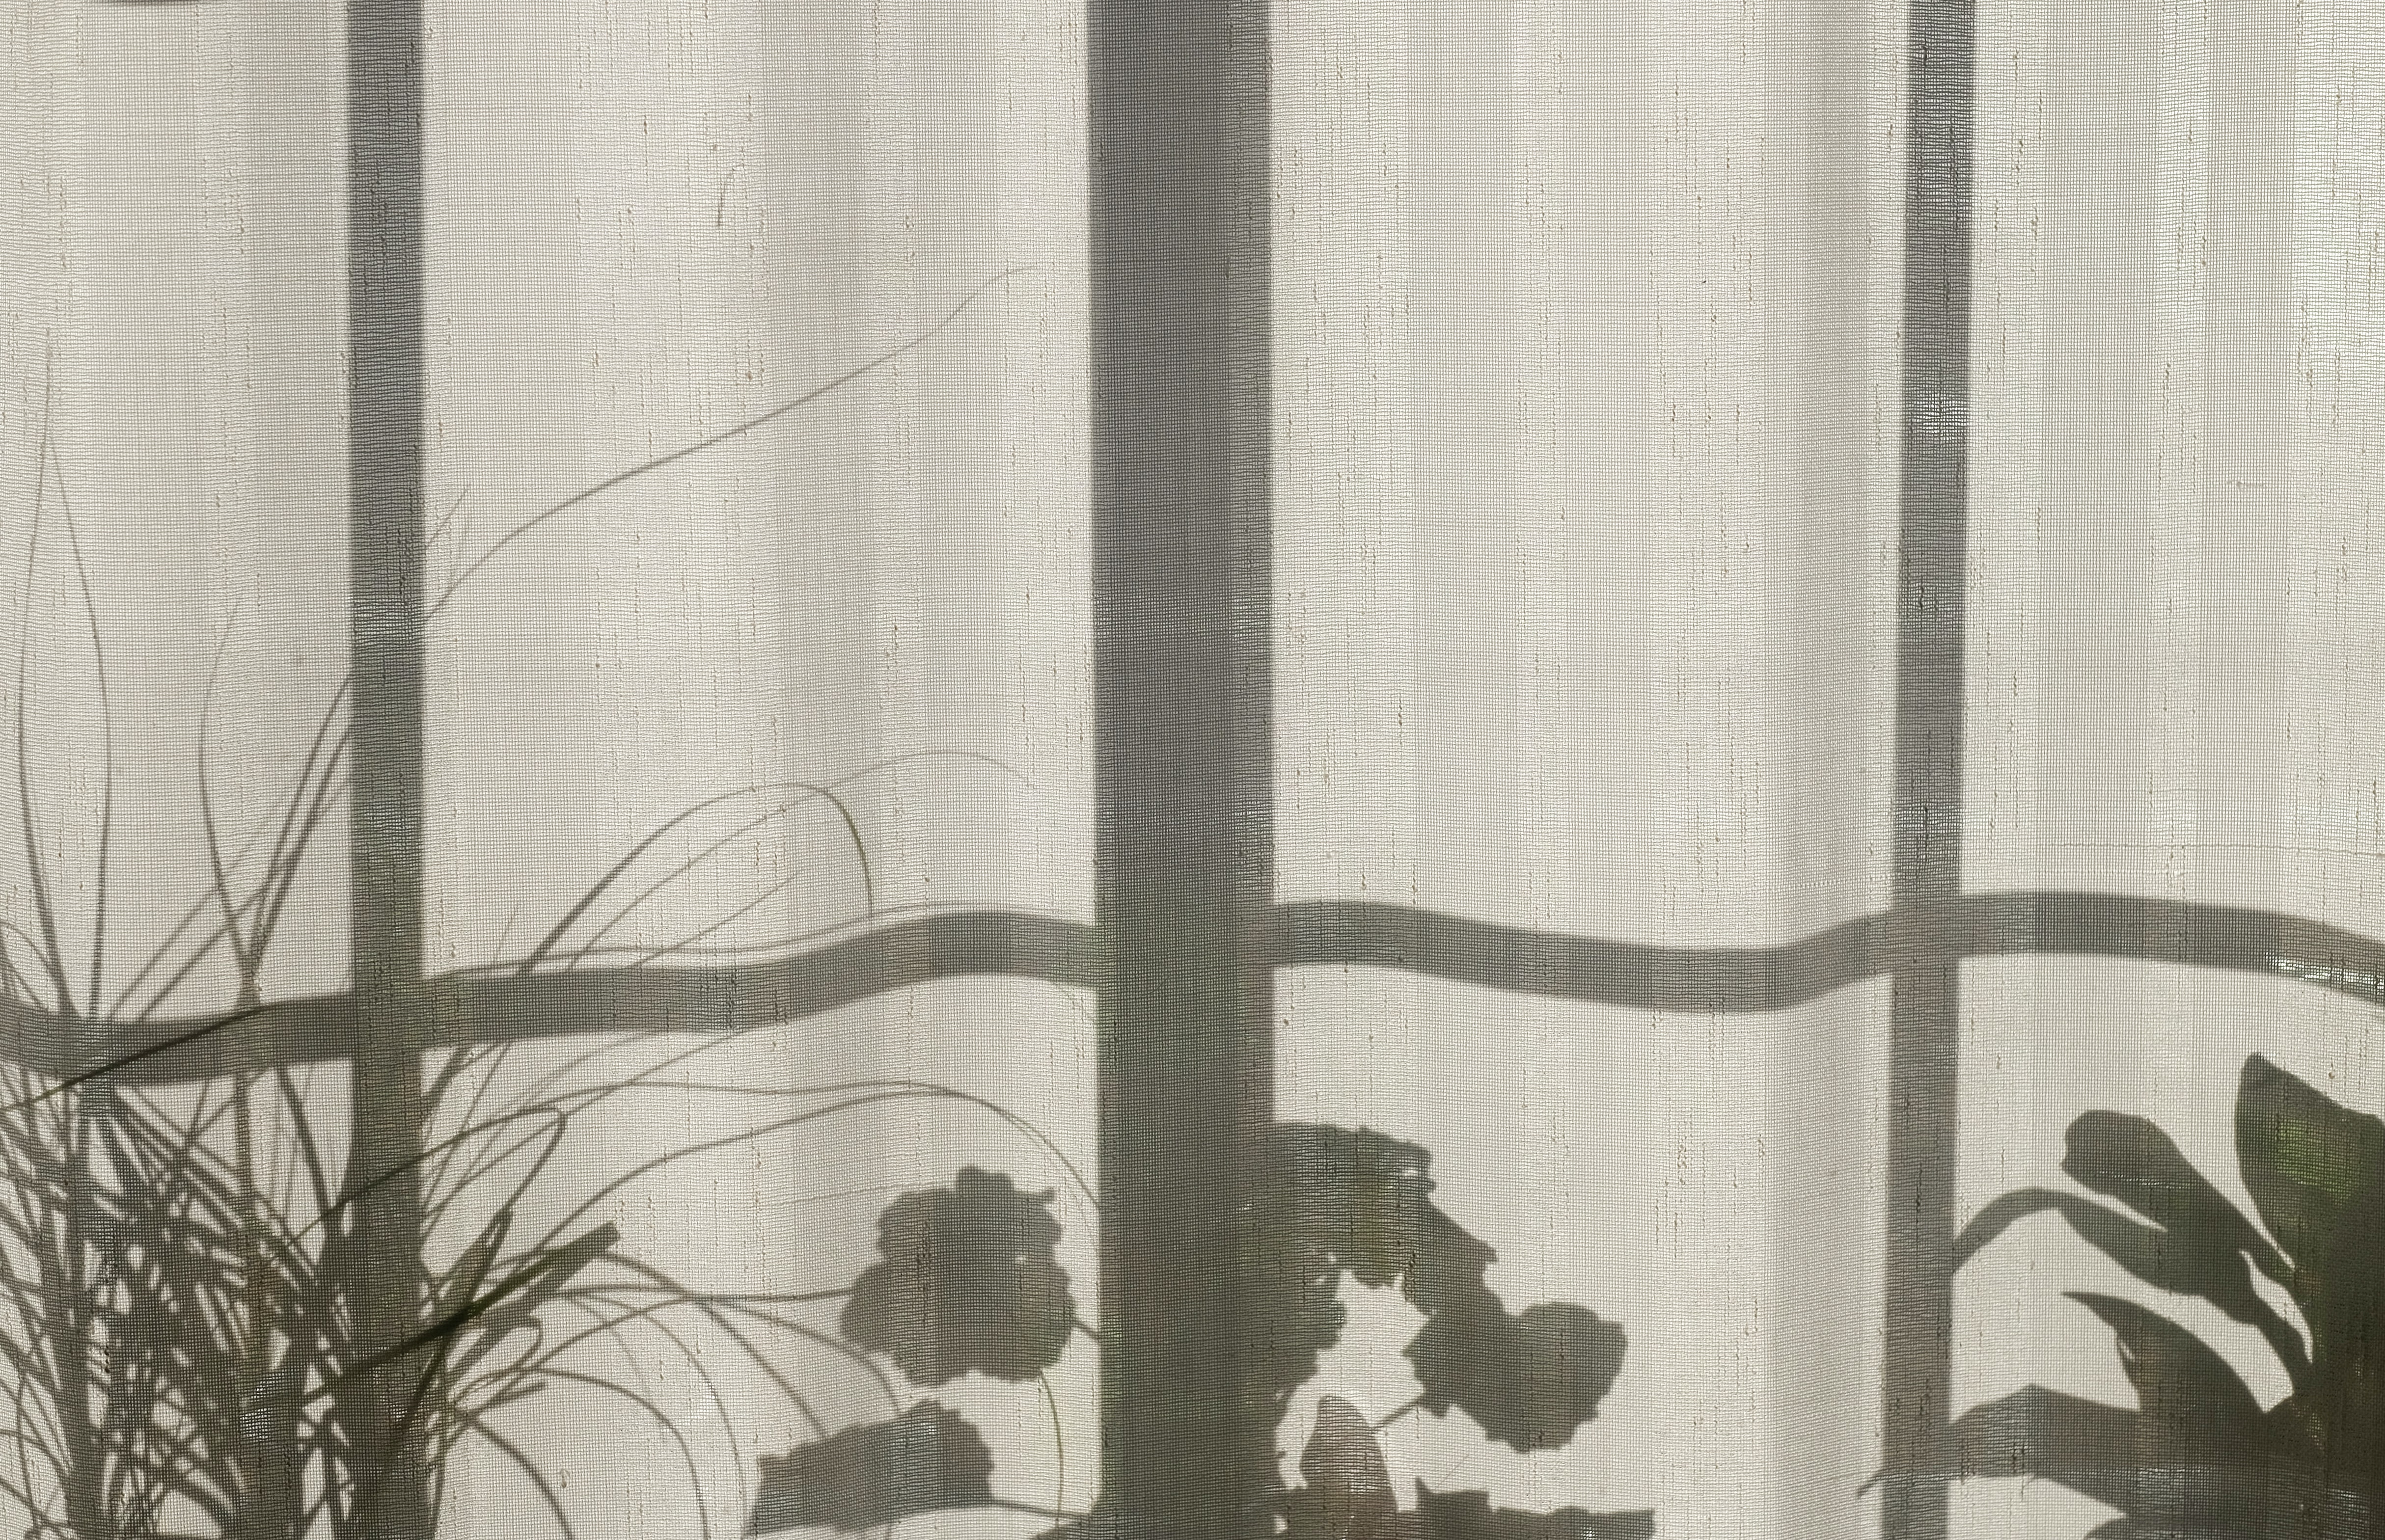 Shadow of the window frame and plants in pots on the white curtain in Nordfjordeid